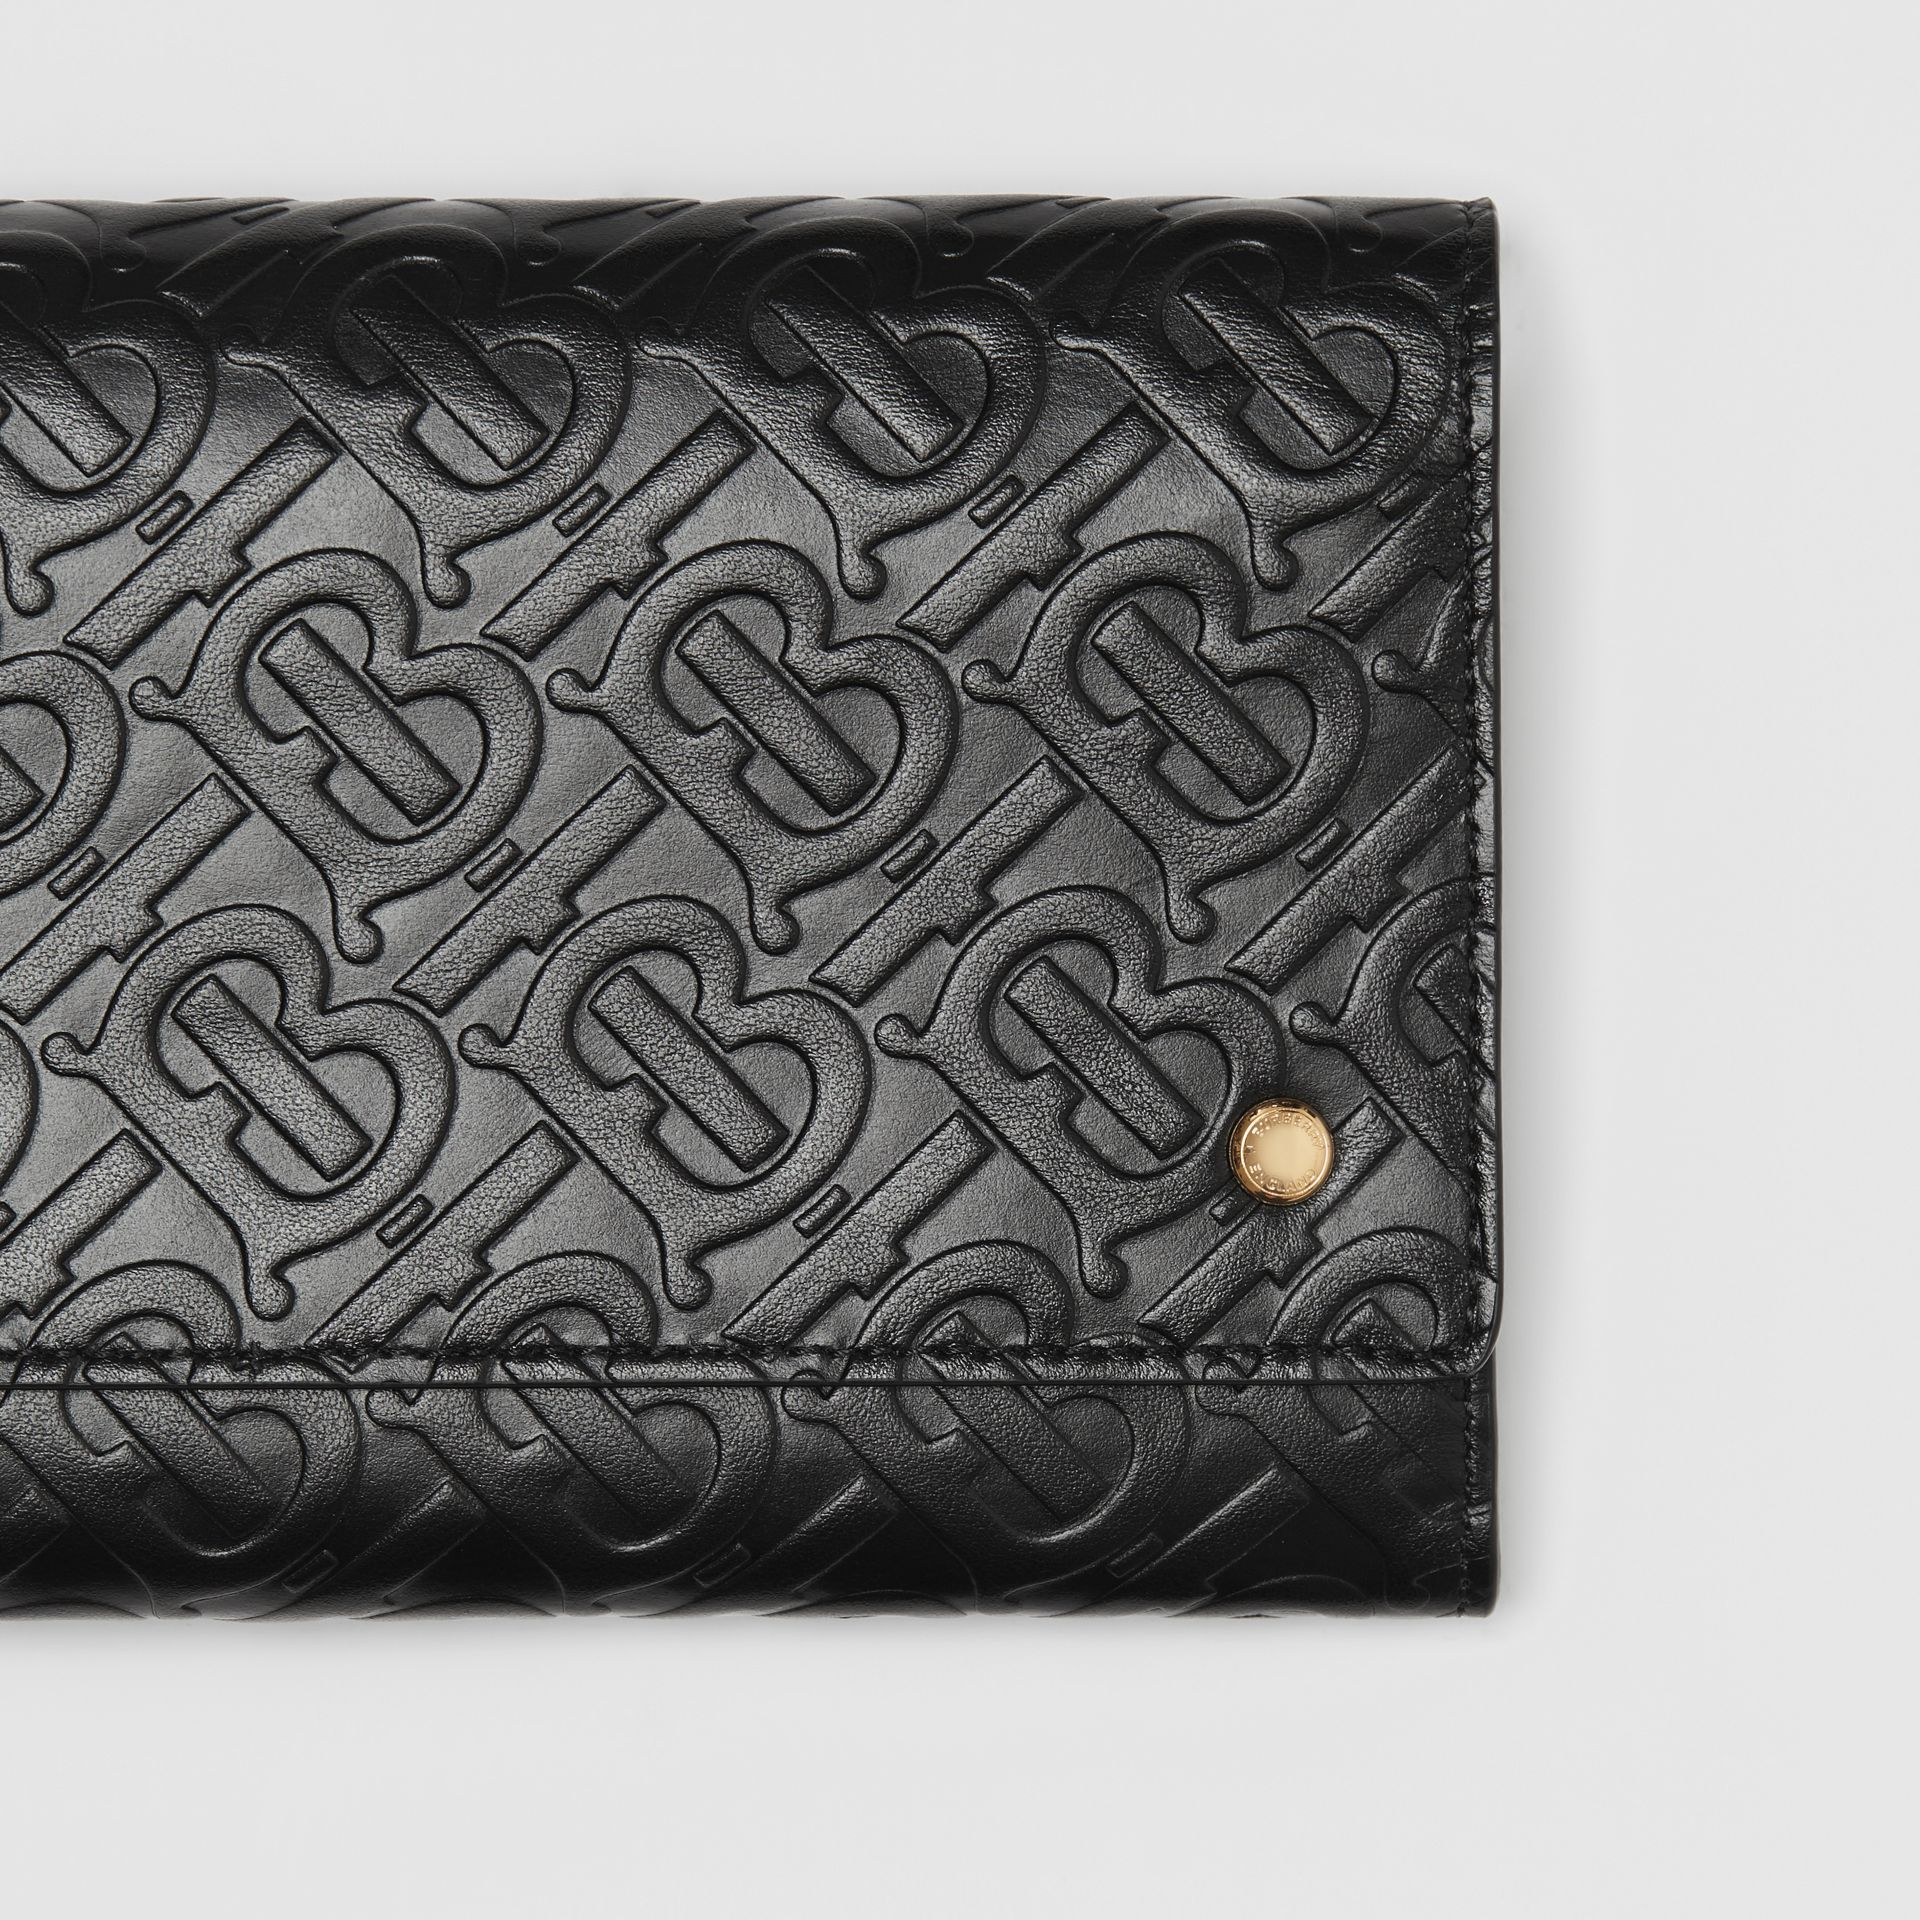 Monogram Leather Wallet with Detachable Strap in Black - Women | Burberry - gallery image 1